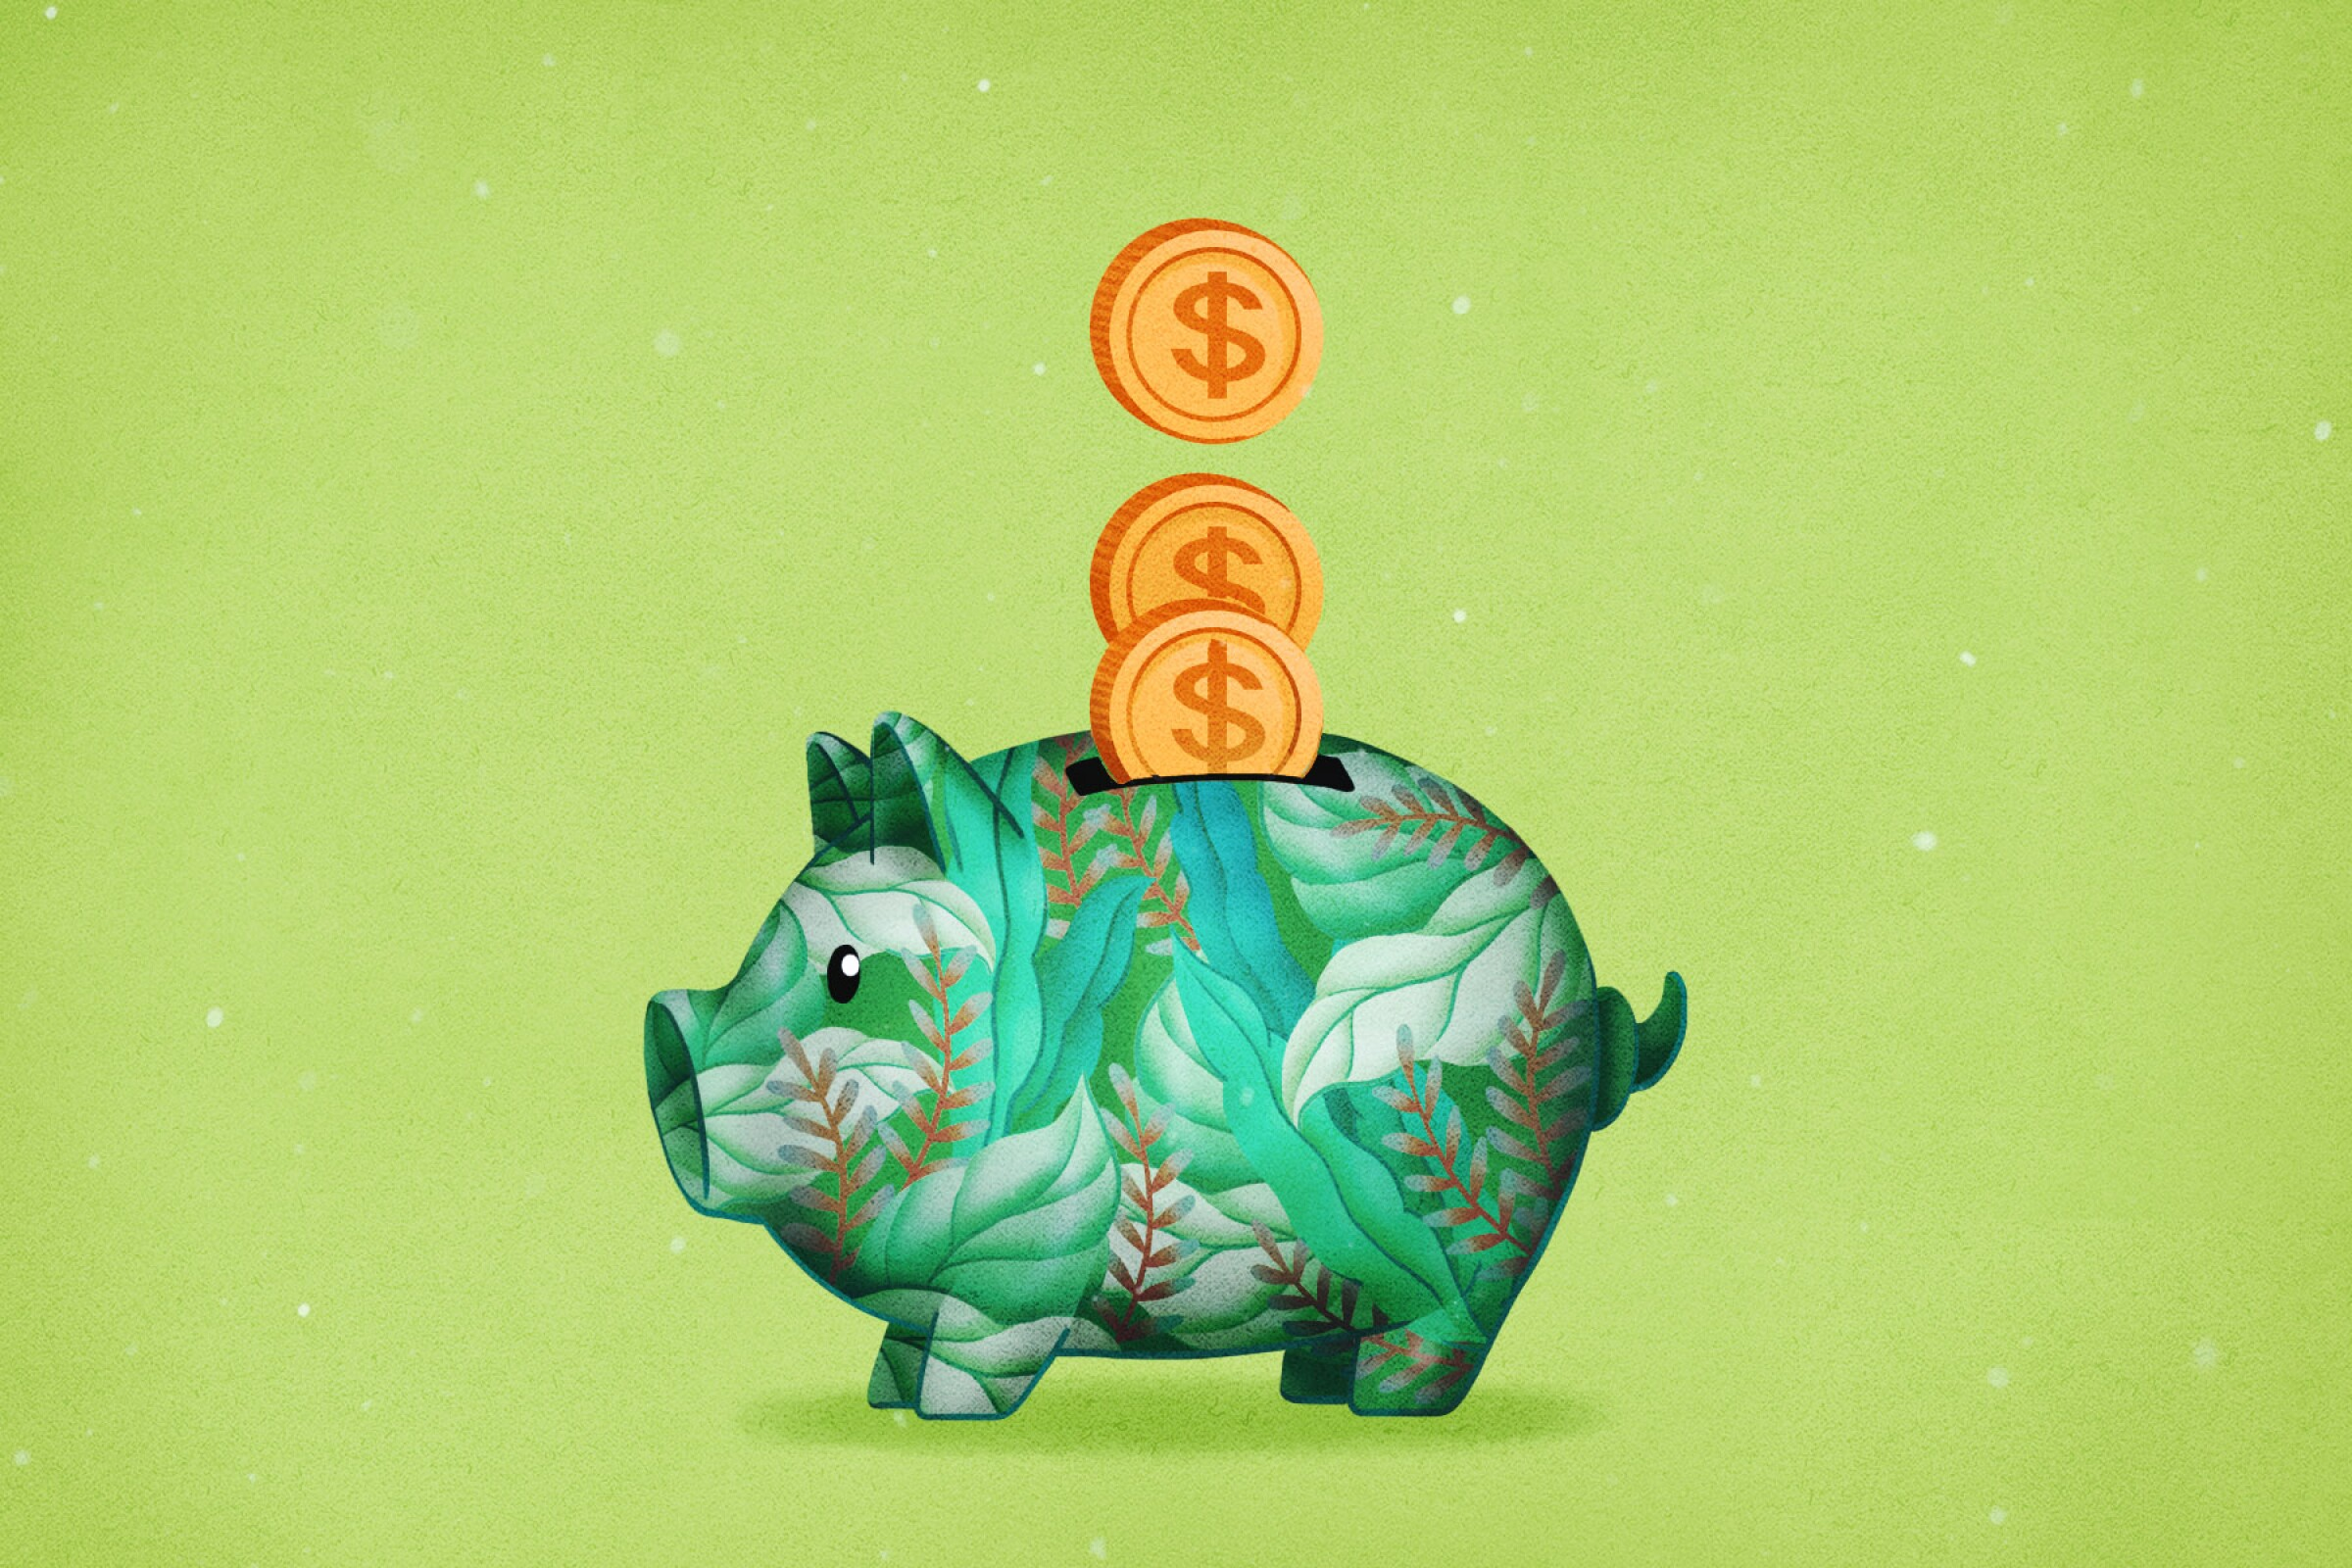 Piggy bank illustration